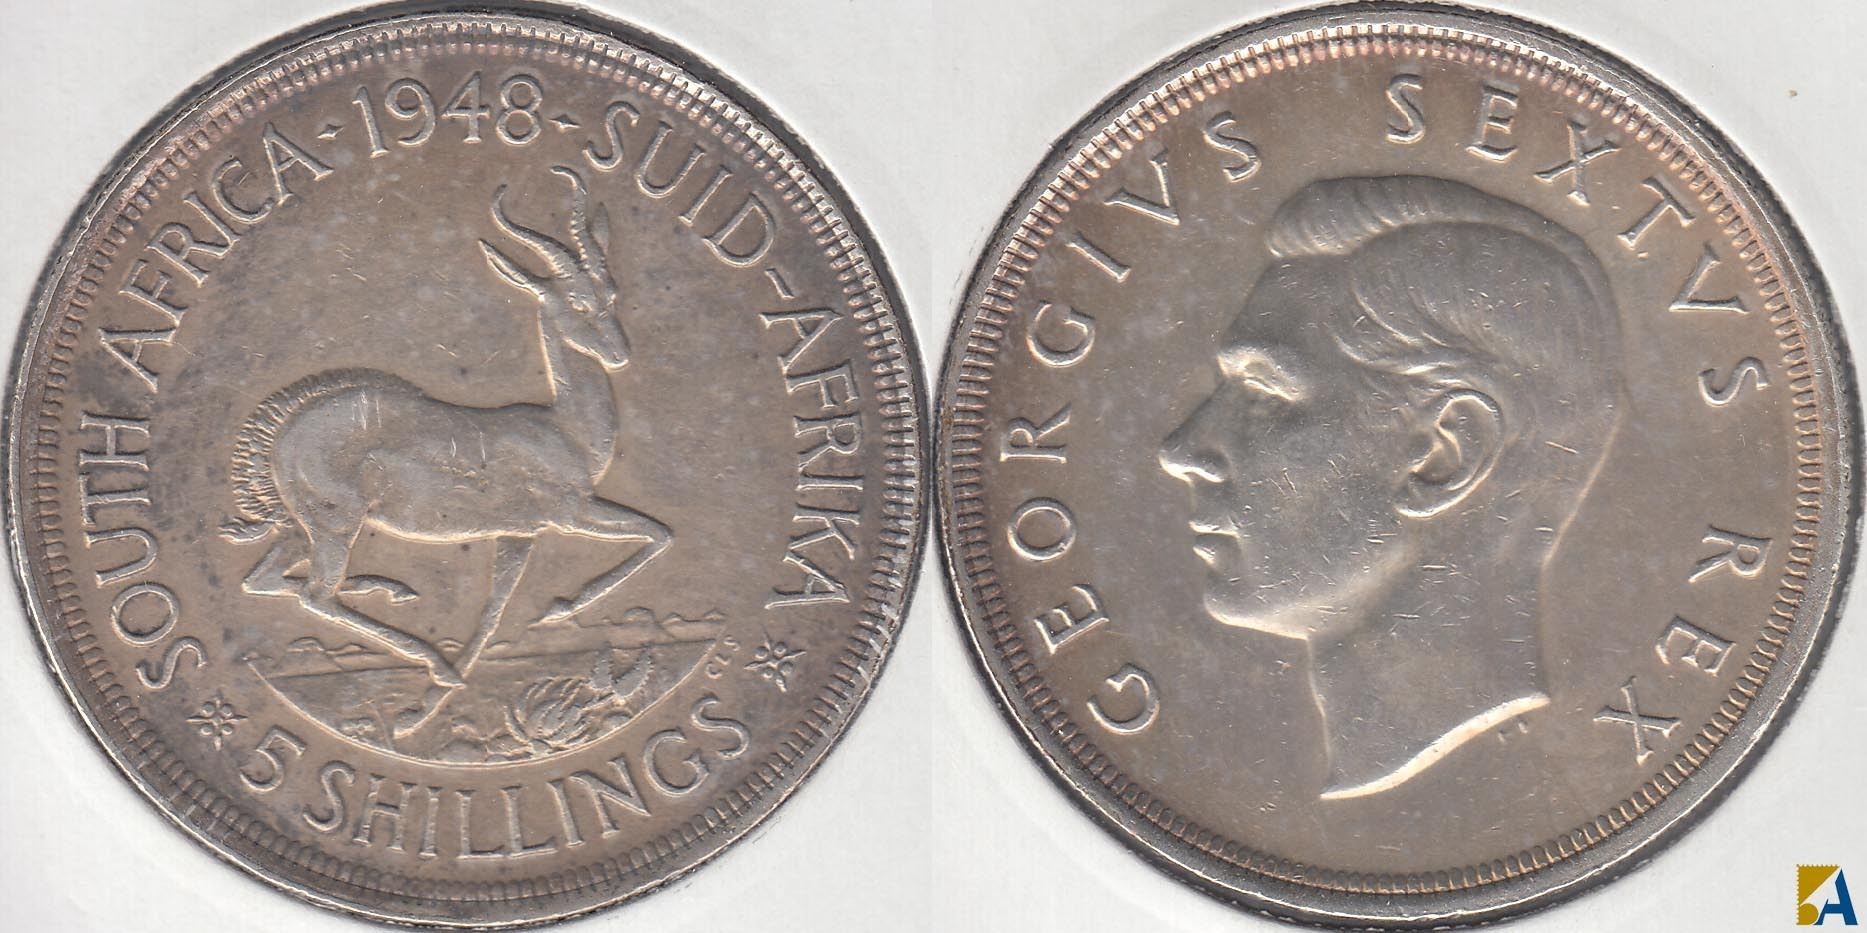 SUDAFRICA - SOUTH AFRICA. 5 SHILLINGS DE 1948. PLATA 0.800. (2)